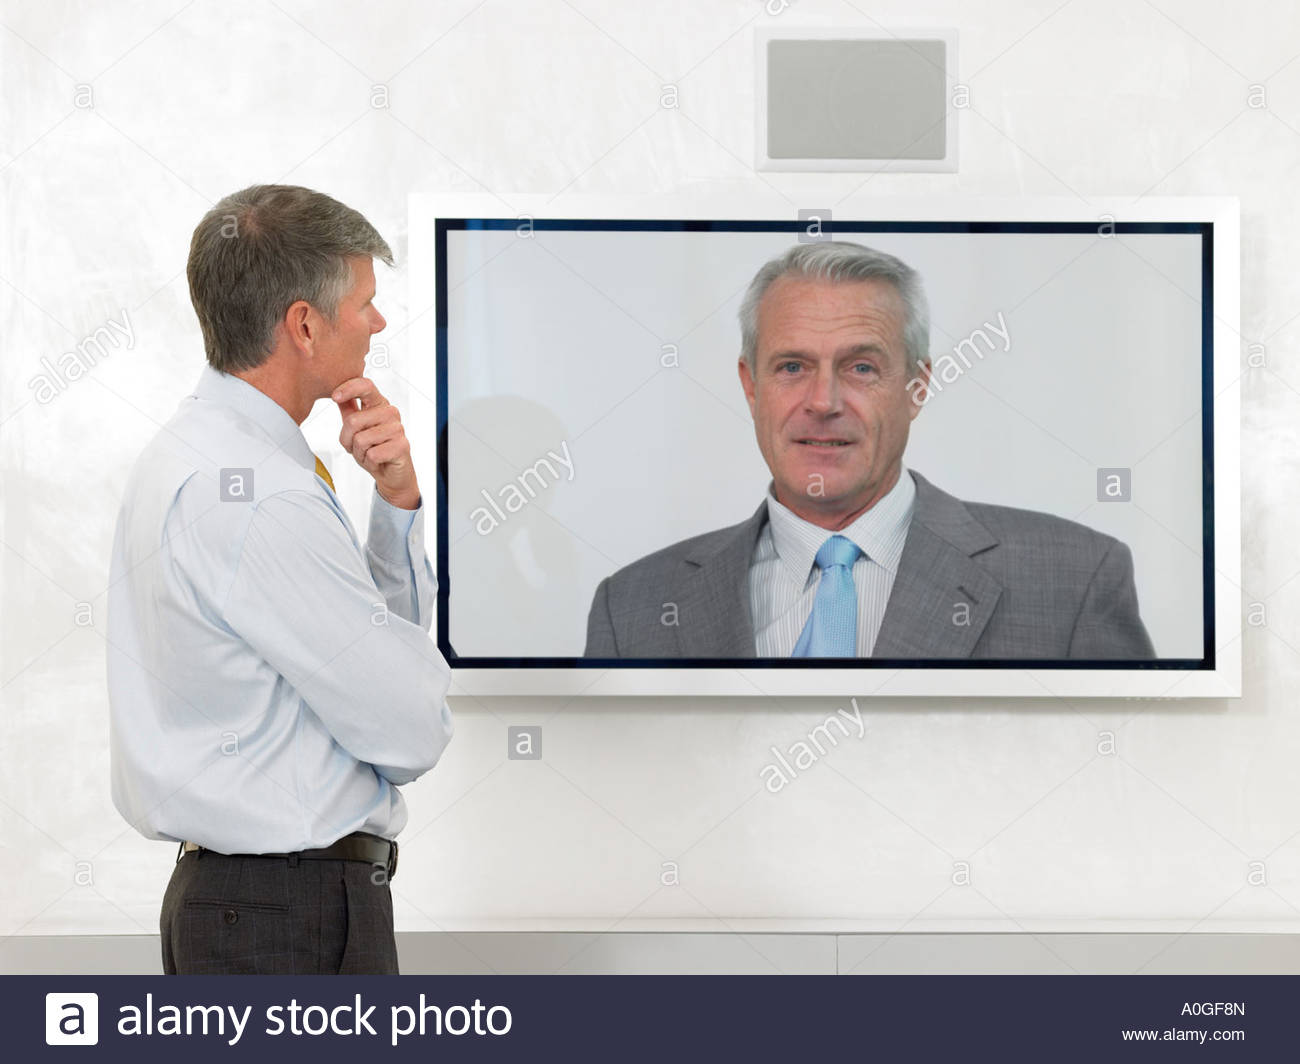 Businessmen in video conference - Stock Image